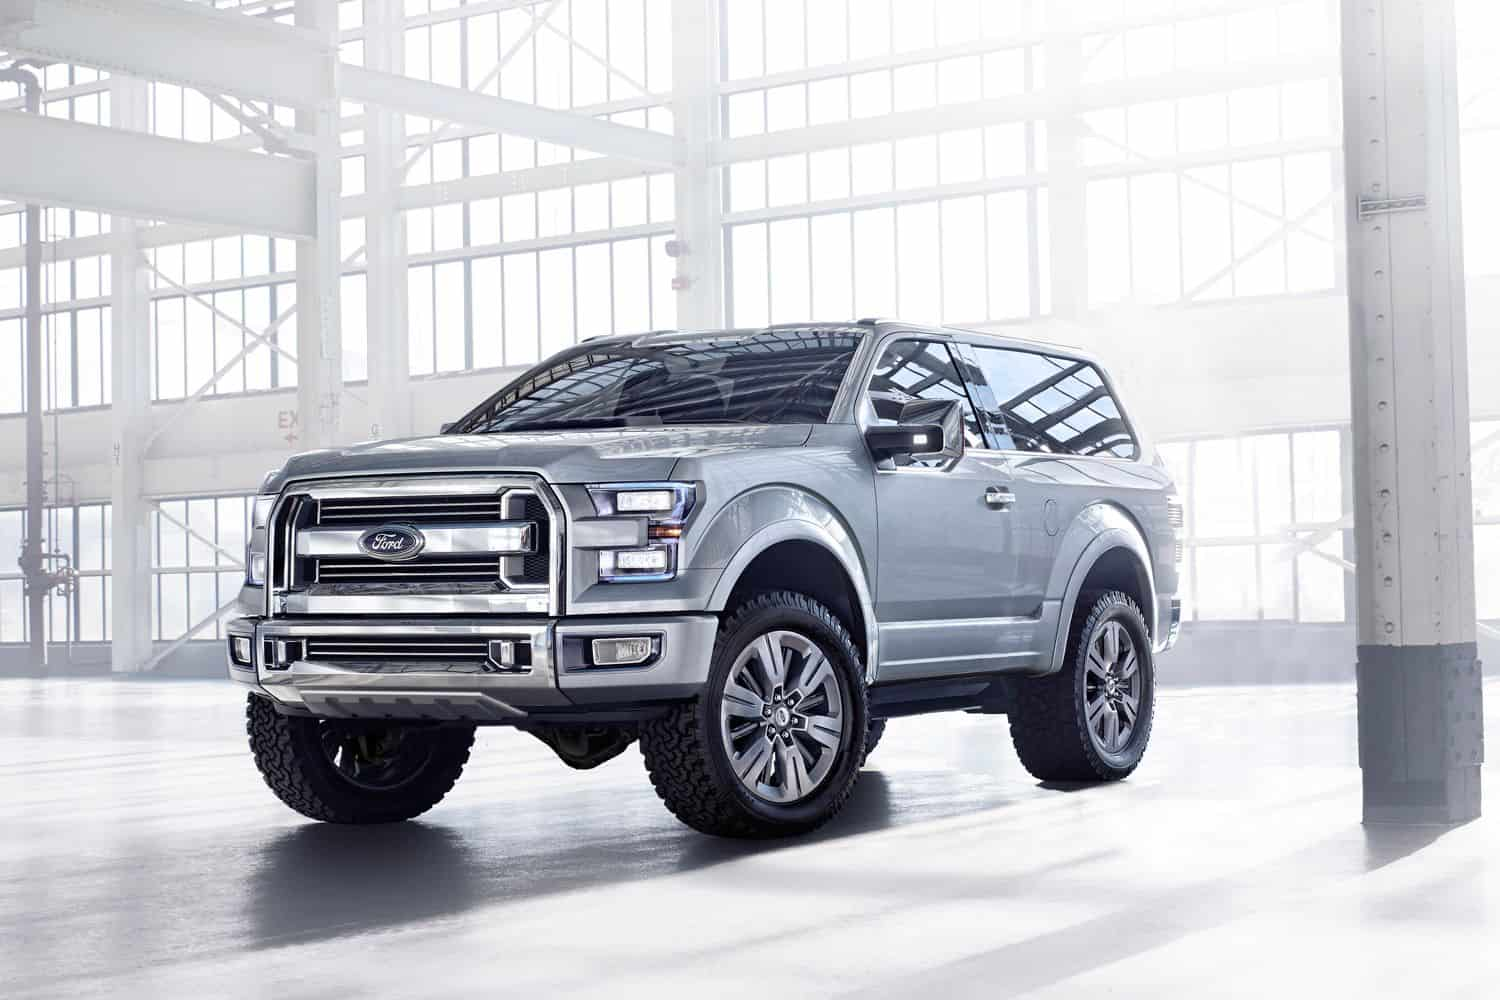 2015 Ford Bronco >> Ford Bronco Its Concept Price And Release Prettymotors Com